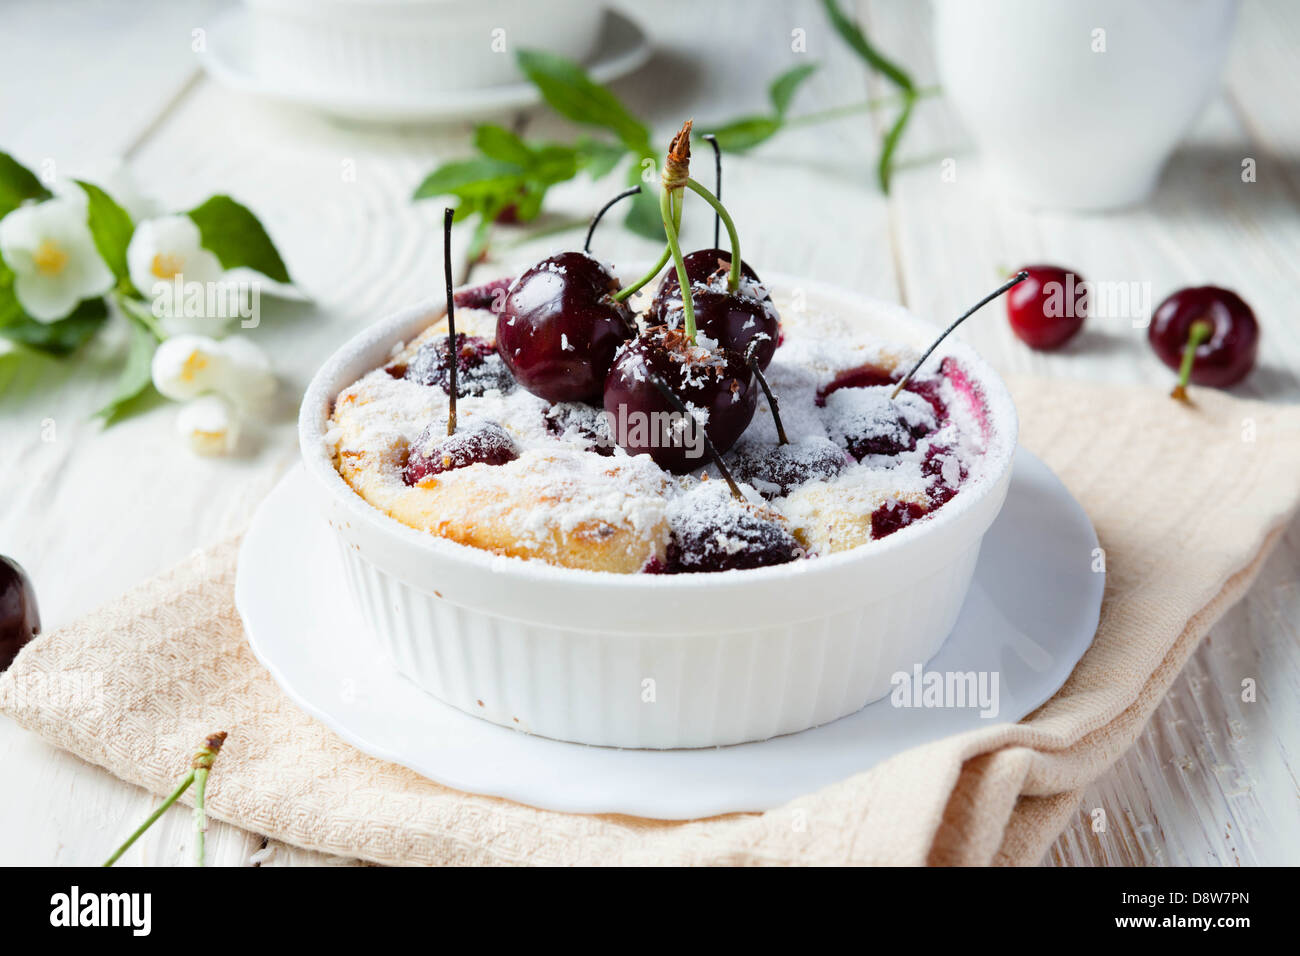 Cherry Clafoutis with powdered sugar, food close up - Stock Image